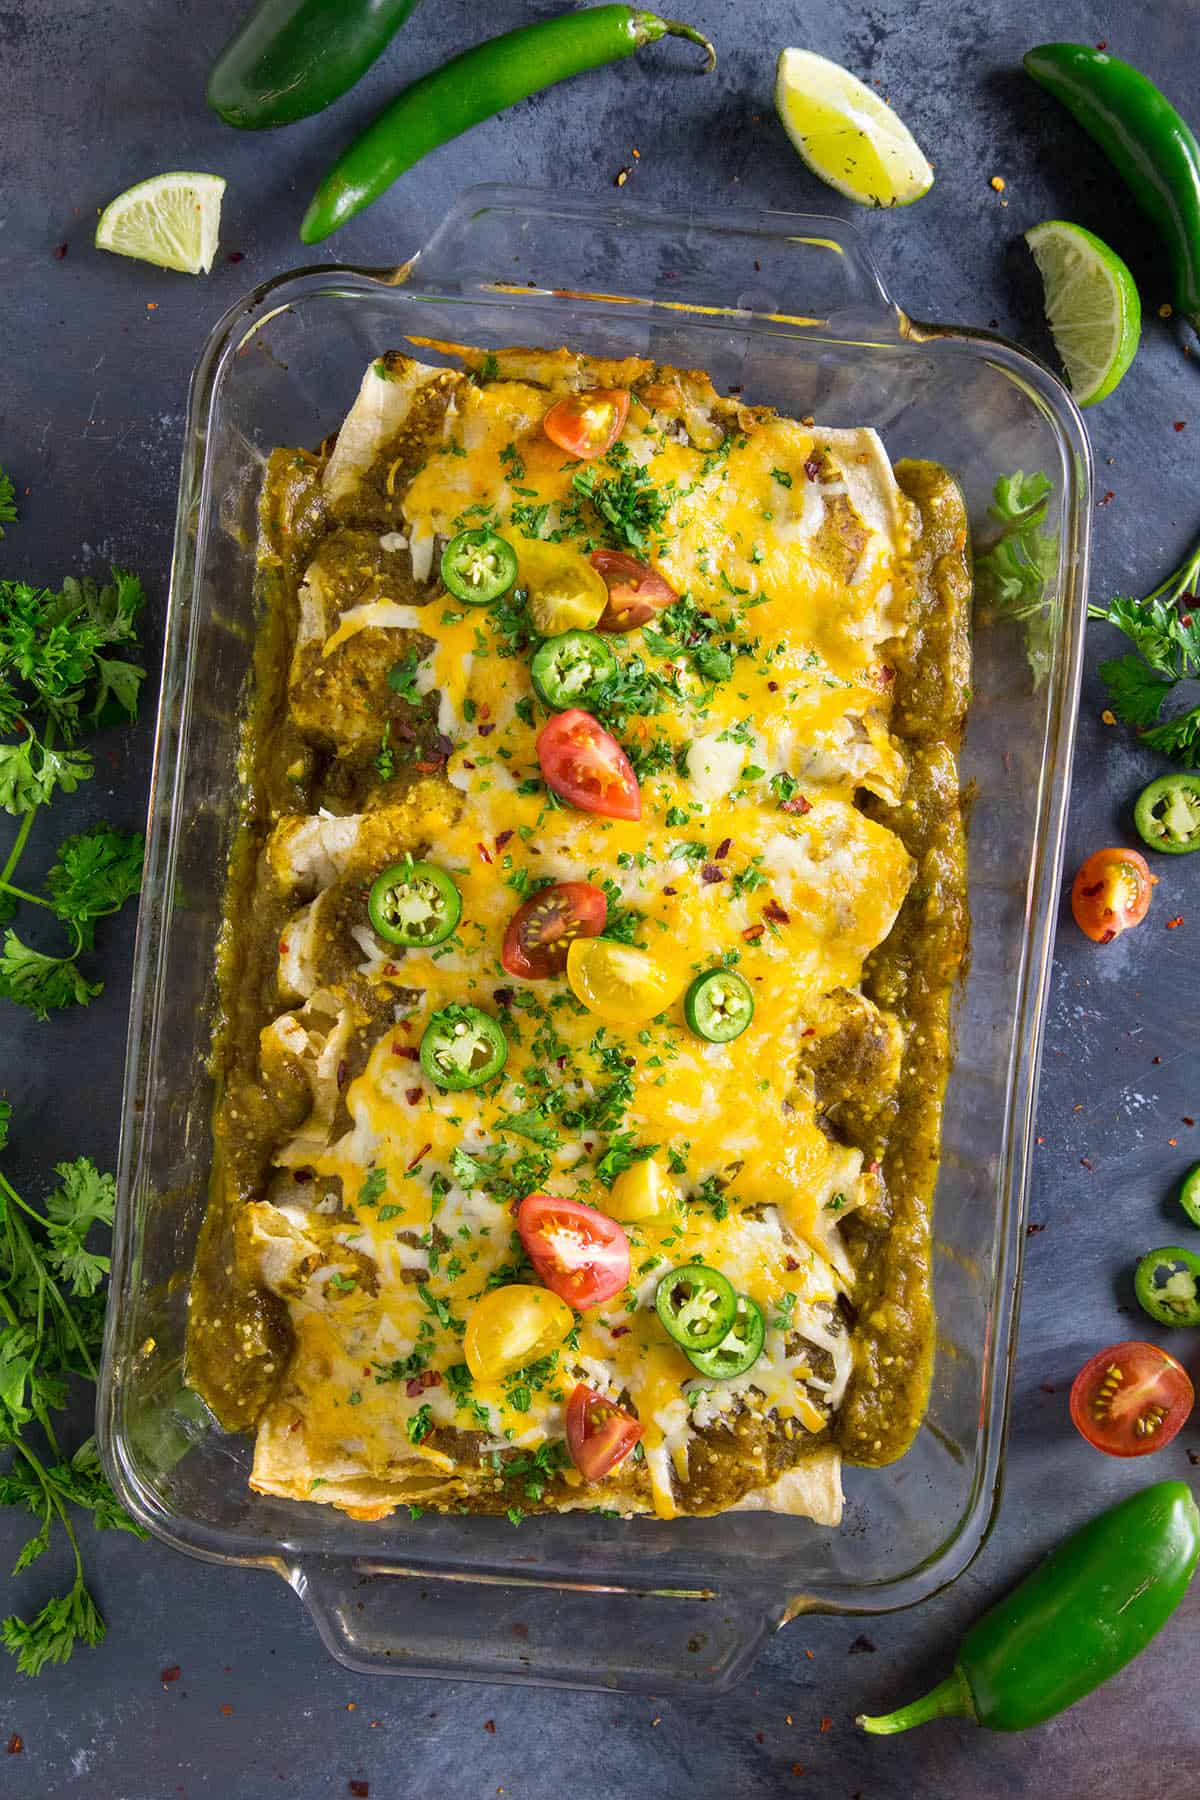 Chicken Enchiladas Verde - Baked and Ready to Serve